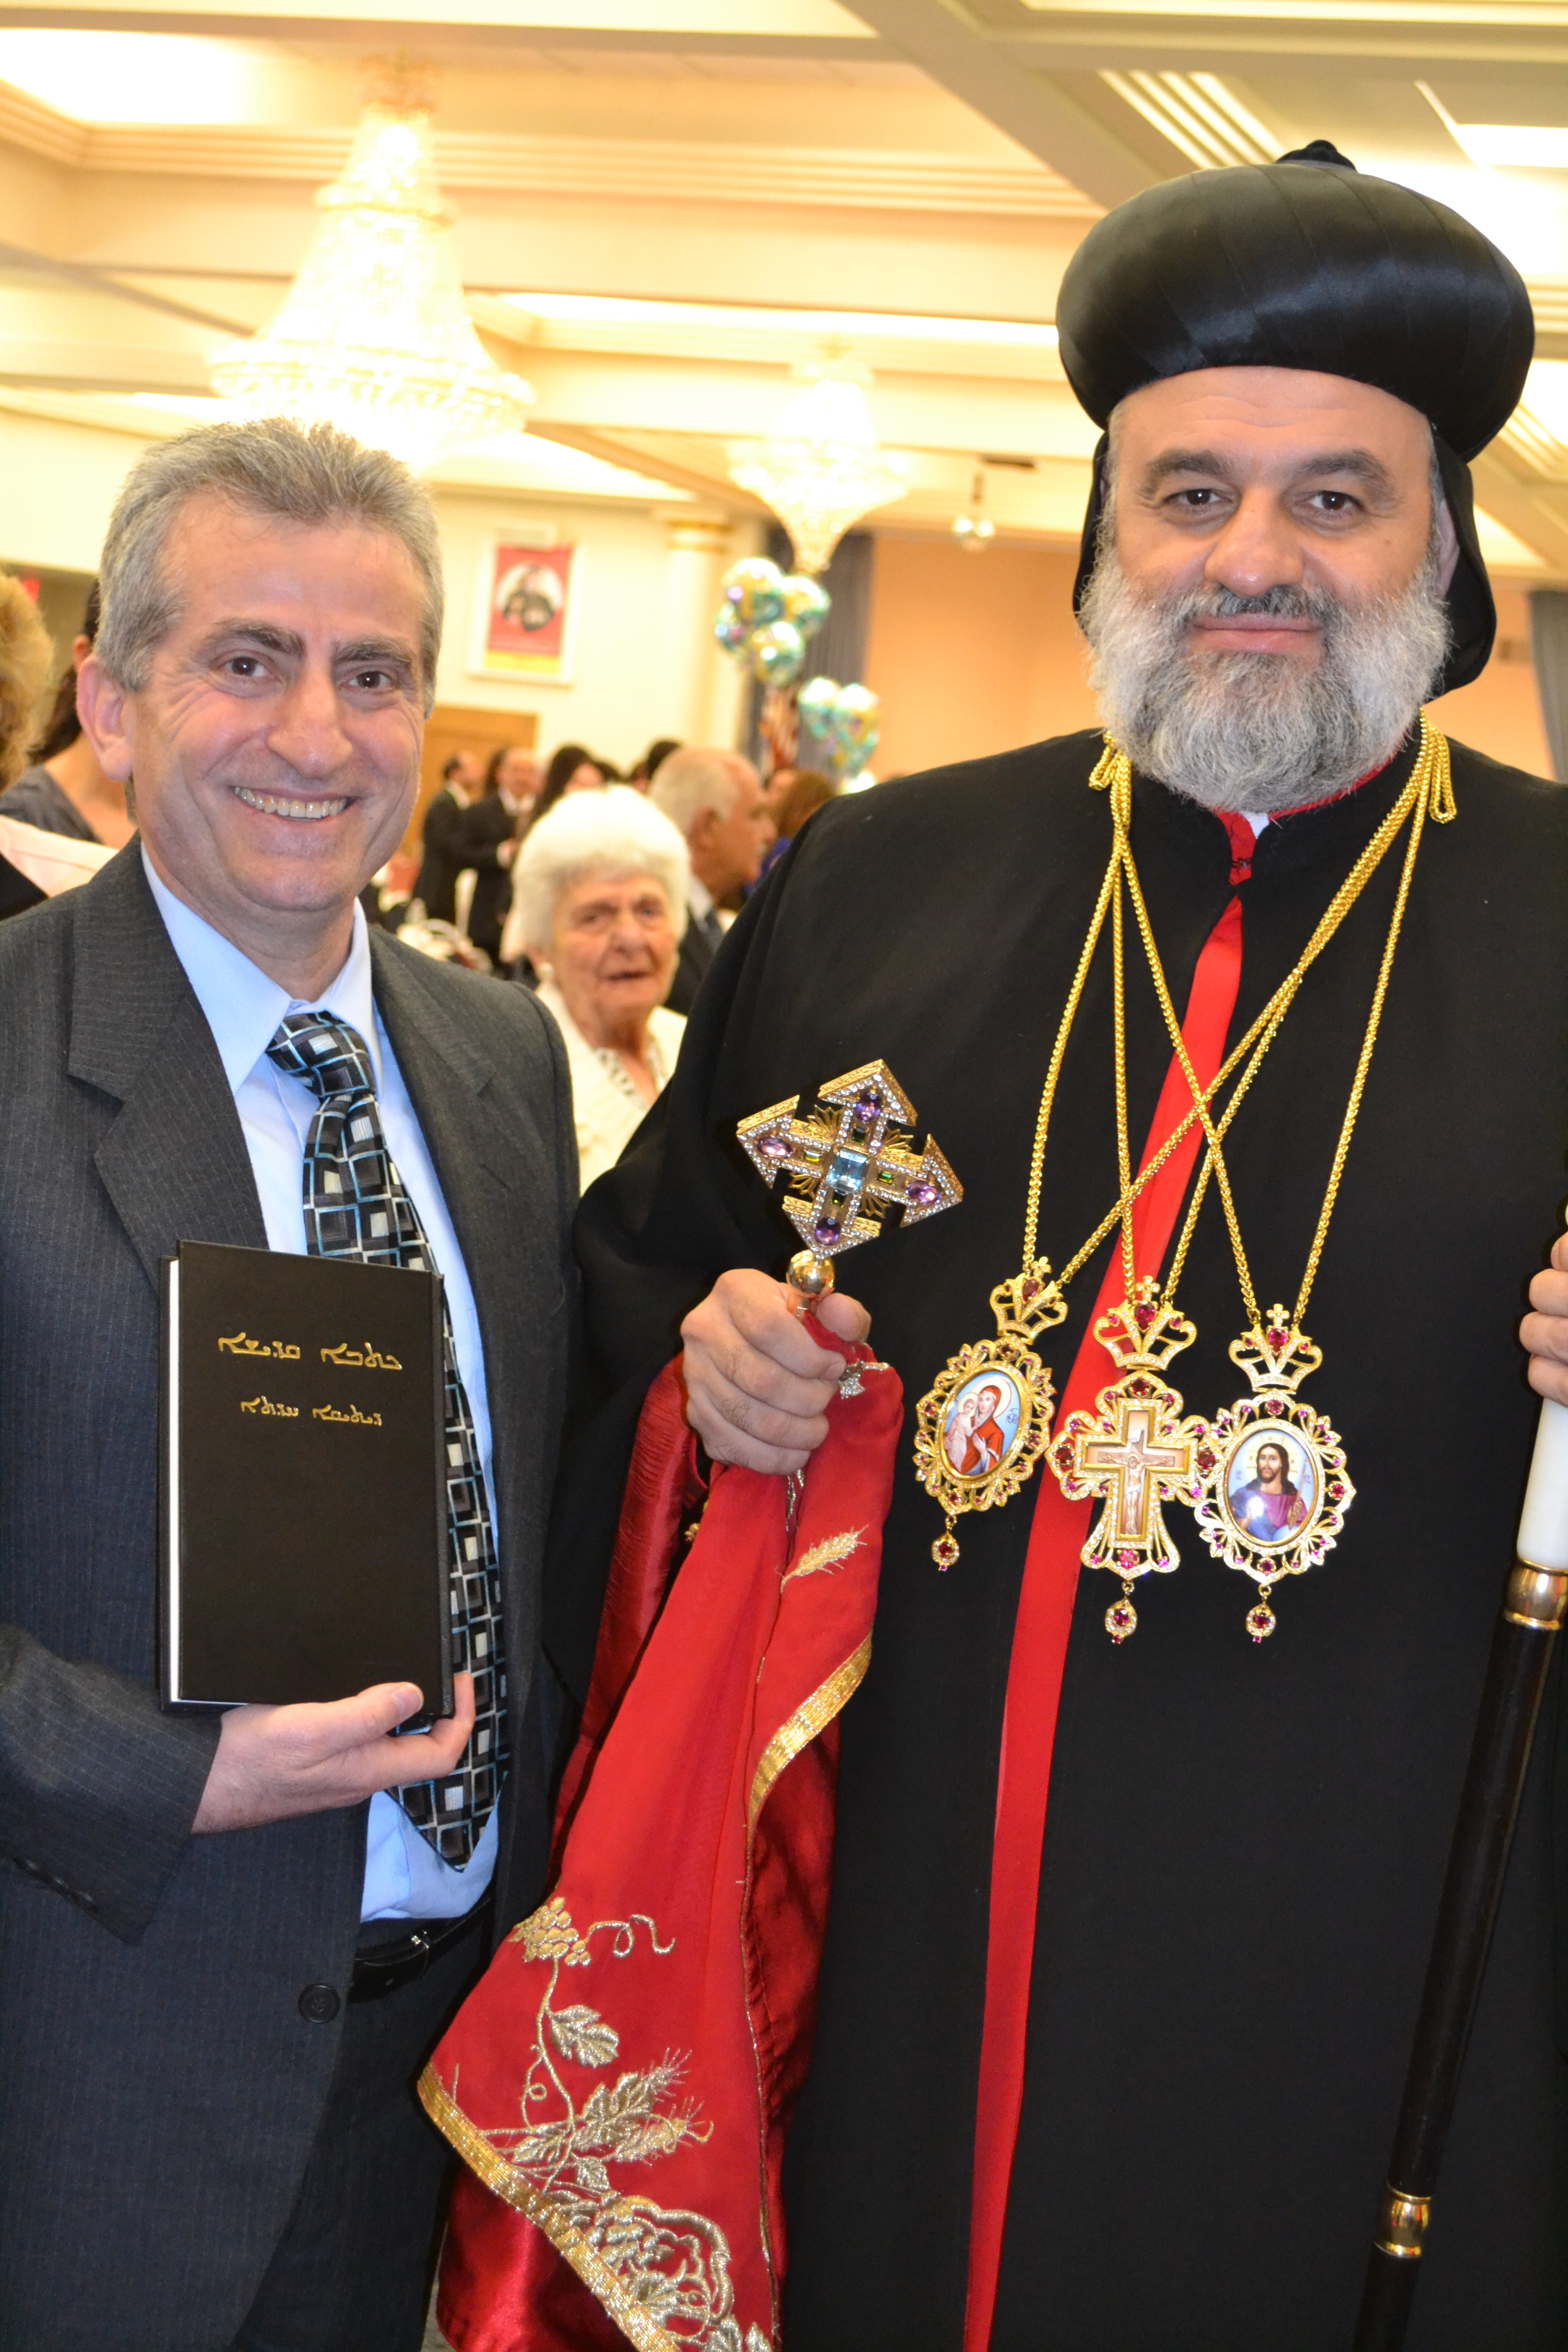 Abdul Saadi with patriarch